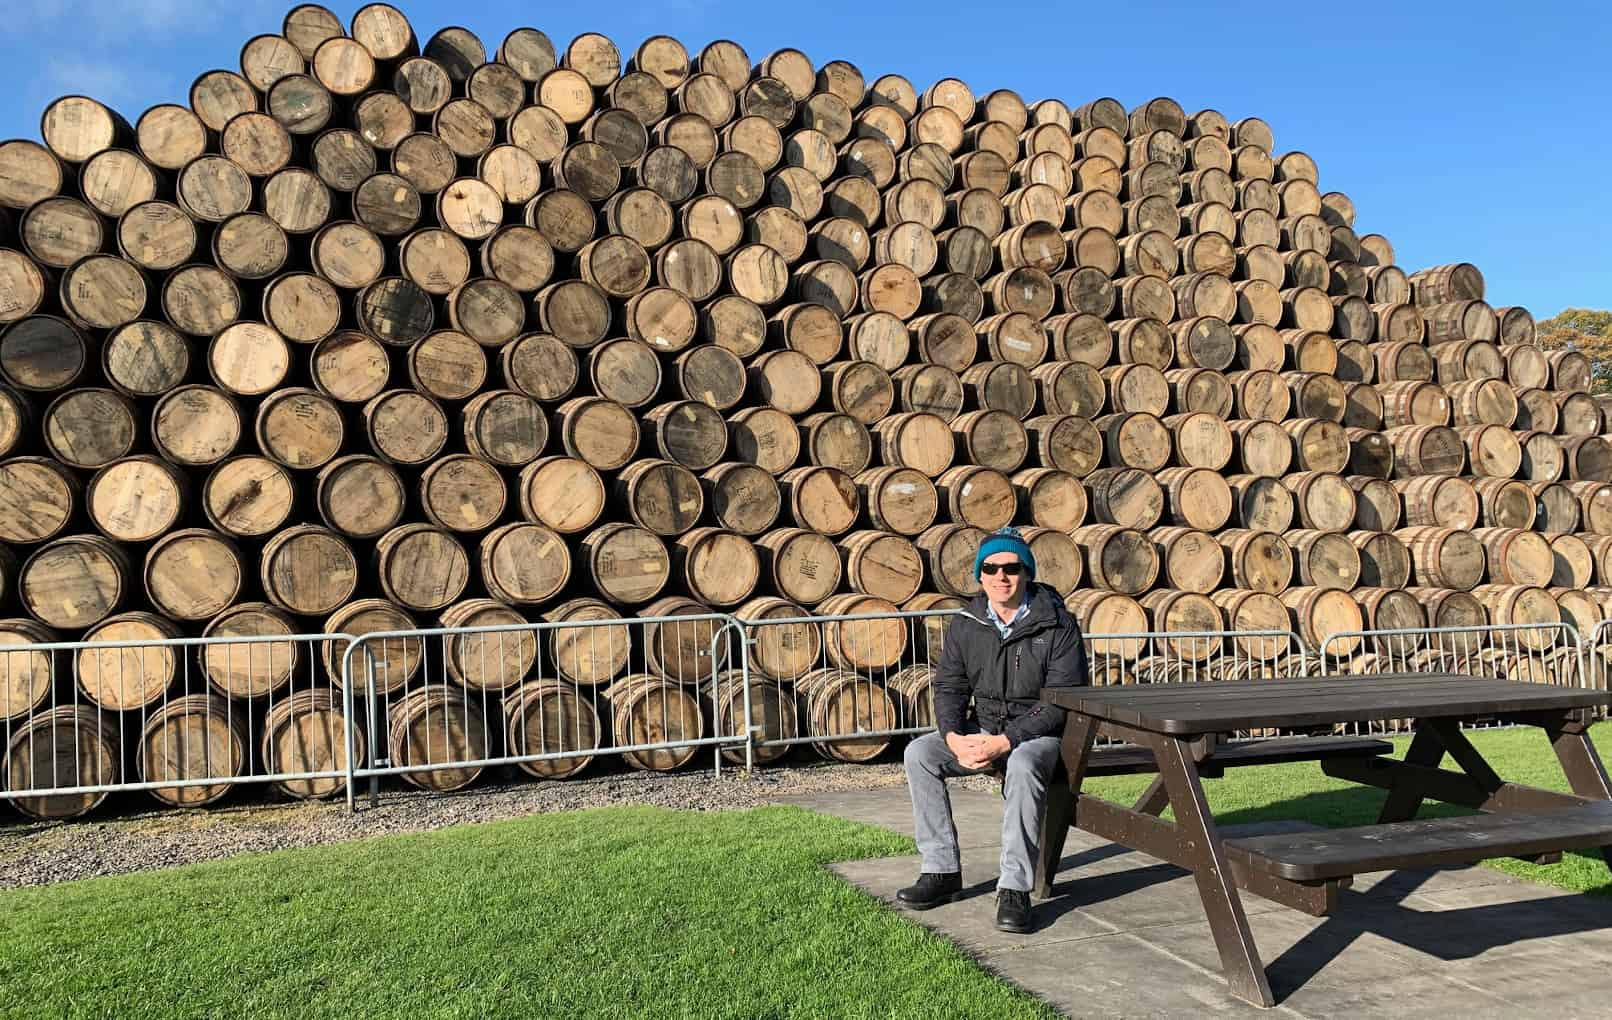 Speyside Cooperidge - Sitting by a pile of Whisky barrels